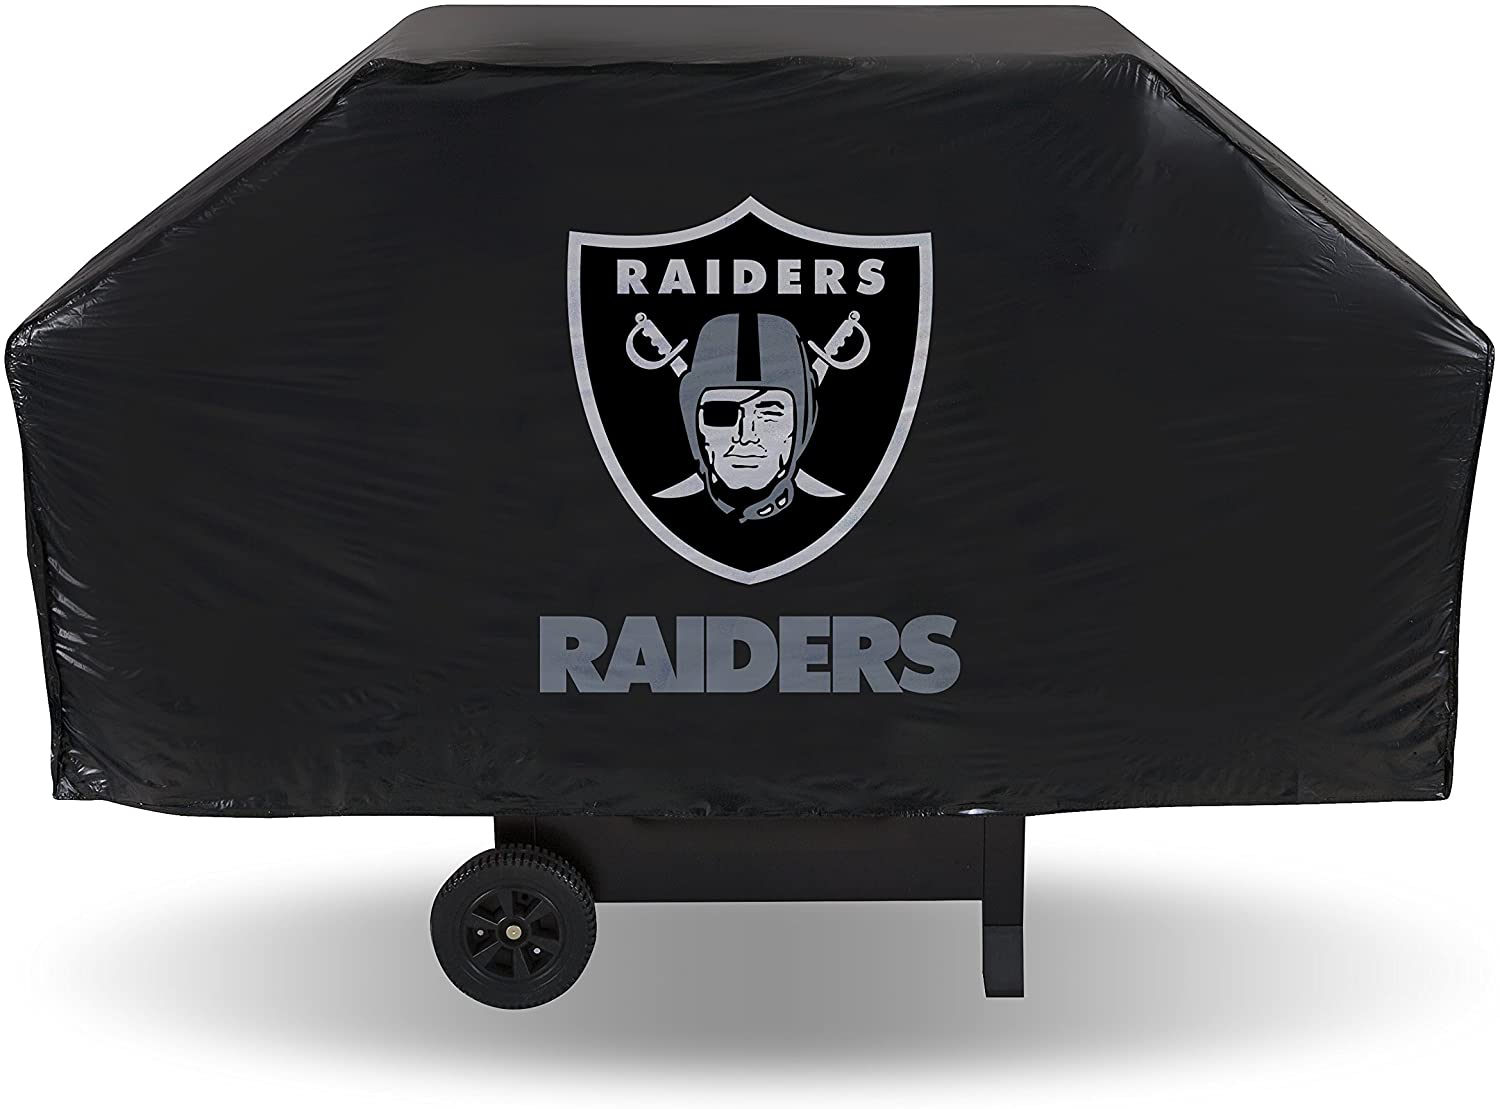 NFL Rico Industries Vinyl Grill Cover, Oakland Raiders